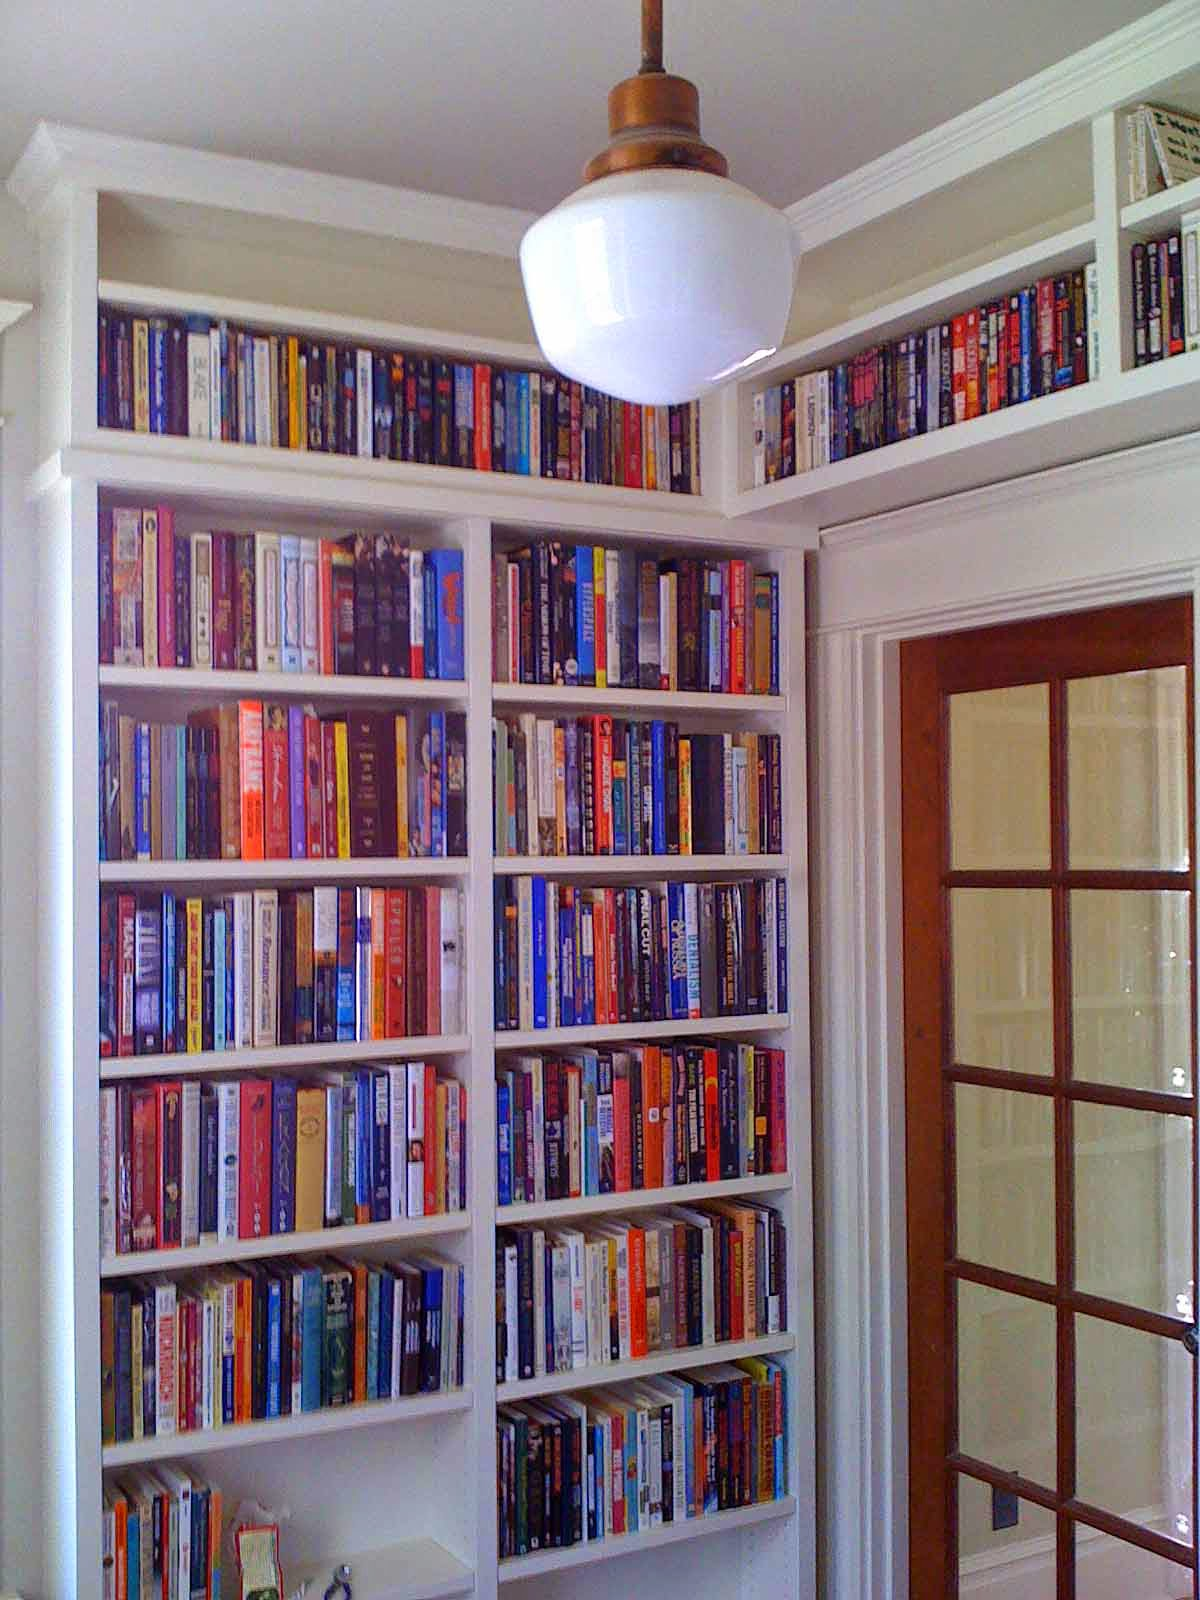 344 Built in bookcase for a century-old house